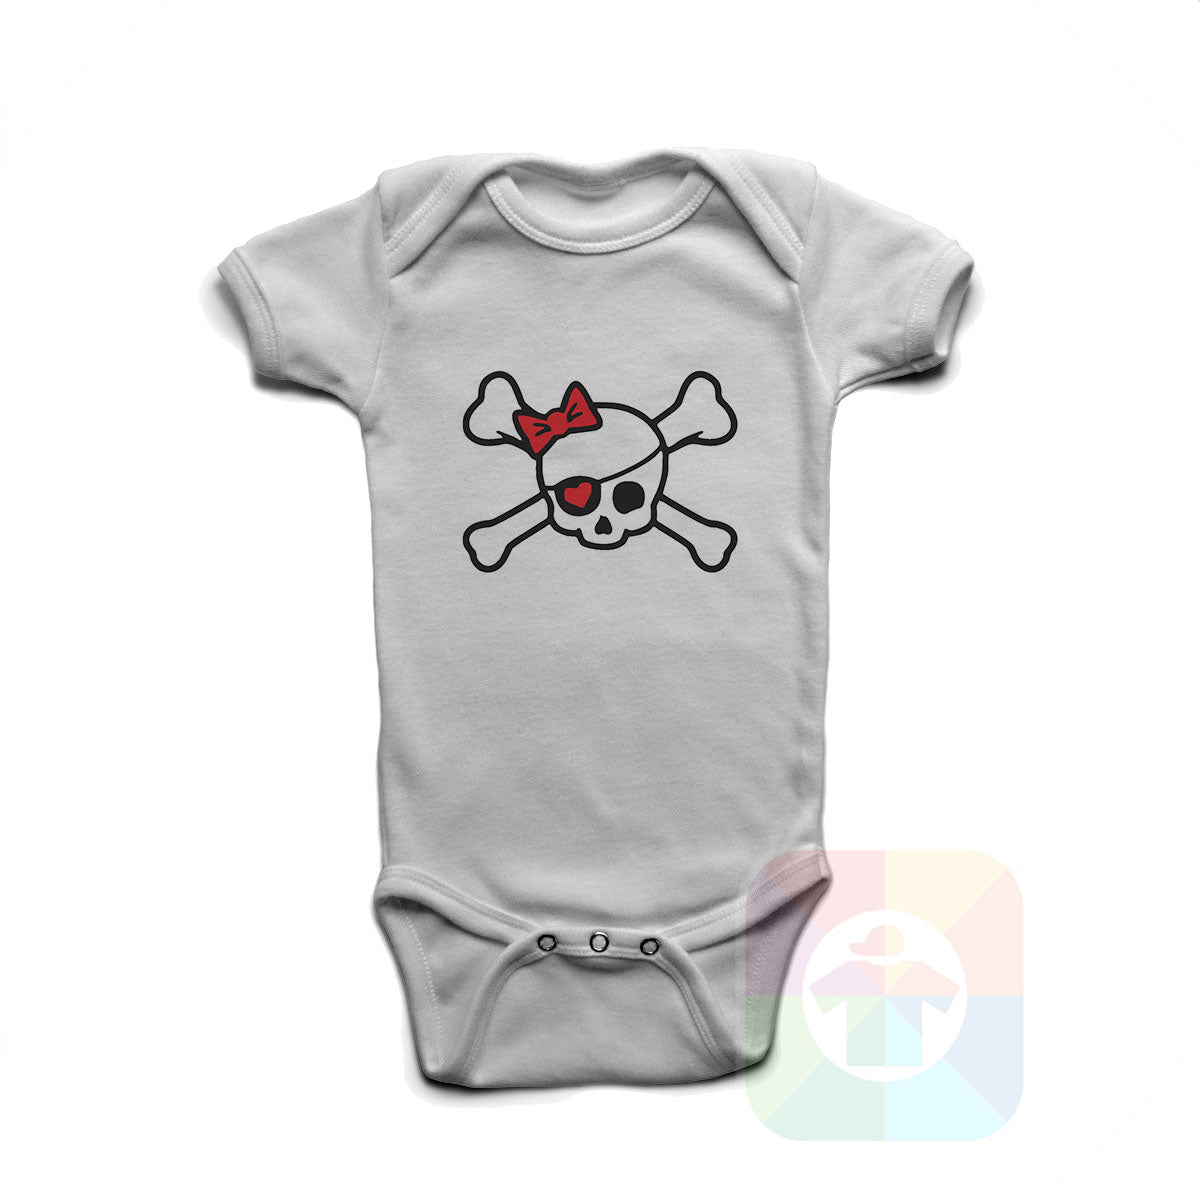 A WHITE Baby Onesie with the  ' Baby onesie 'PIRATE GIRL' kids funny novelty design. #8318 / New Born, 6m, 12m, 24m Sizes ' design.